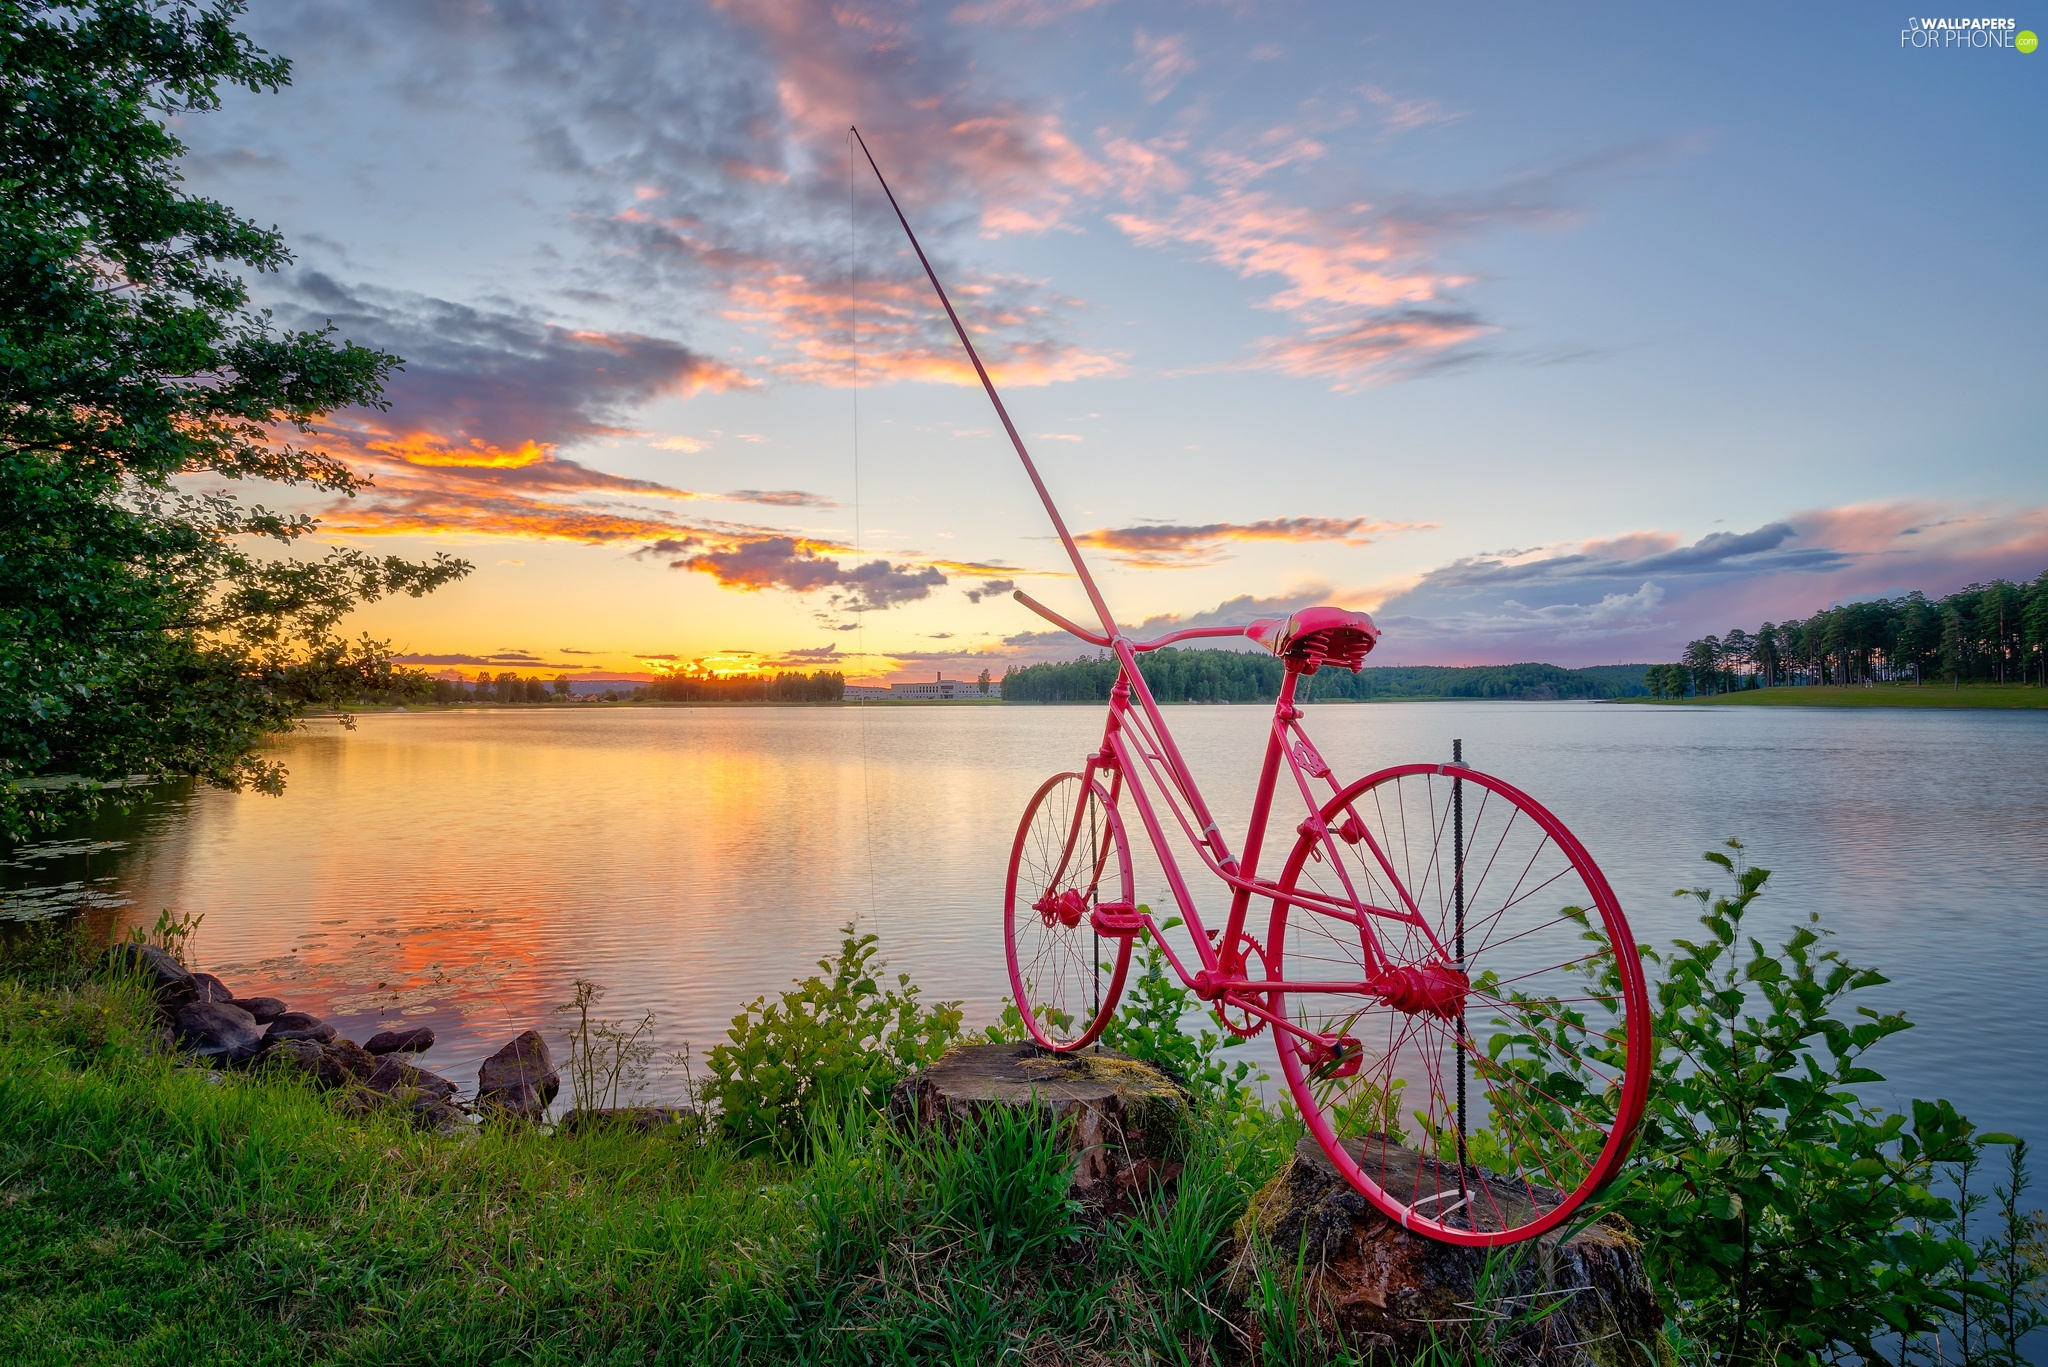 fishing rod, lake, Bike